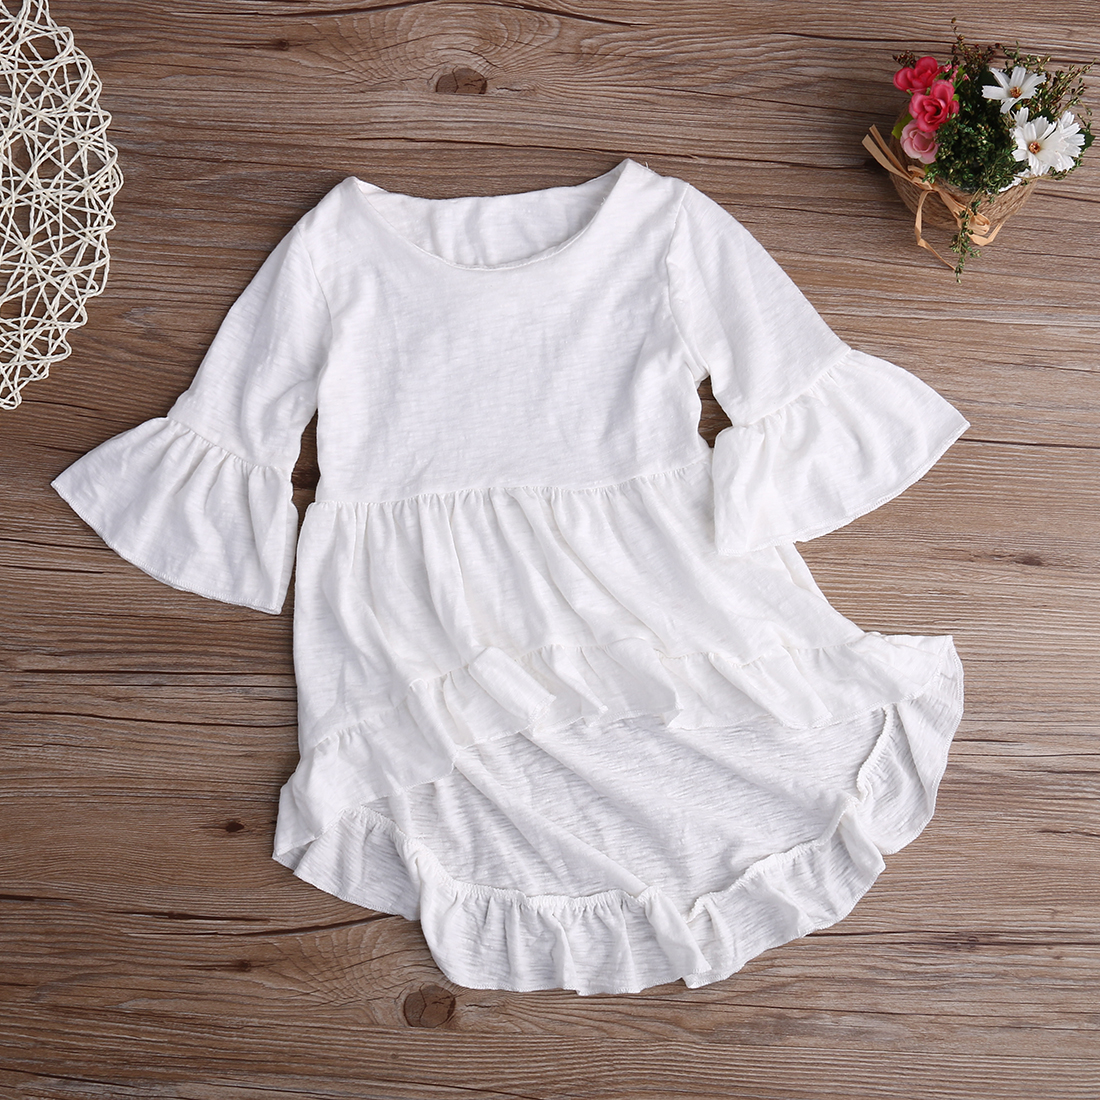 White Baby Girls Dress Frills Flare Sleeve Top T-Shirt Party Ruffles Hem Dresses 1-6Y гель охлаждающий с маслом мятной камфоры aravia professional